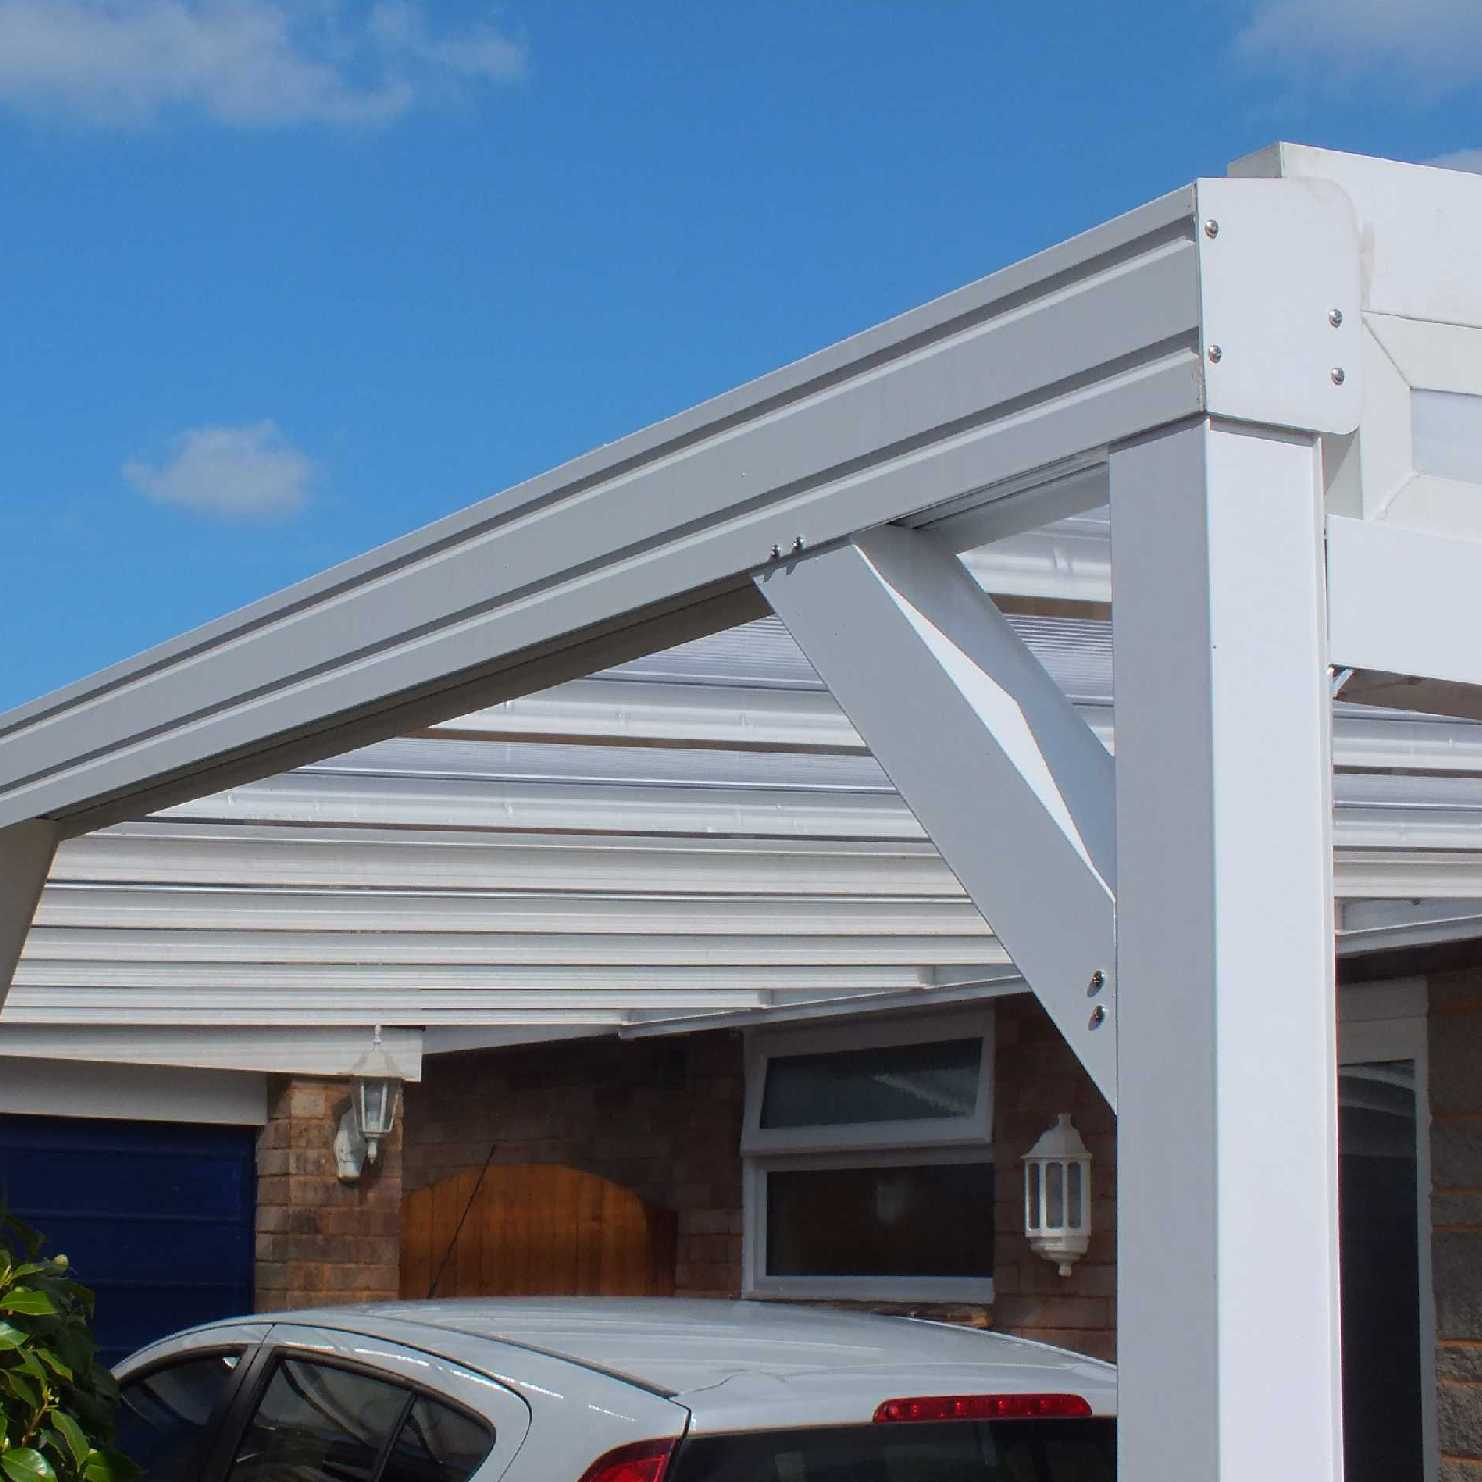 Buy Omega Smart Lean-To Canopy with 16mm Polycarbonate Glazing - 6.3m (W) x 4.0m (P), (4) Supporting Posts online today